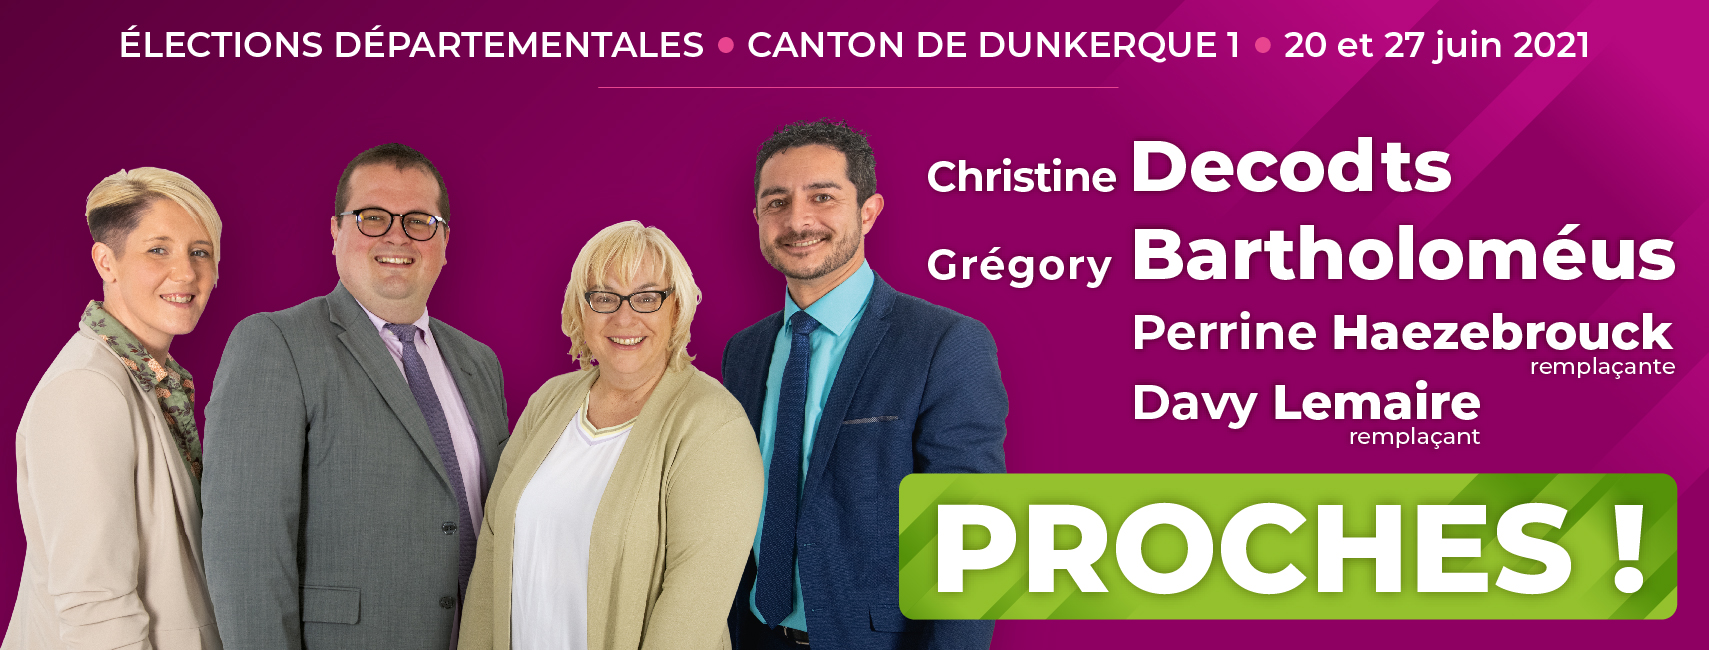 canton-dunkerque-1-groupe